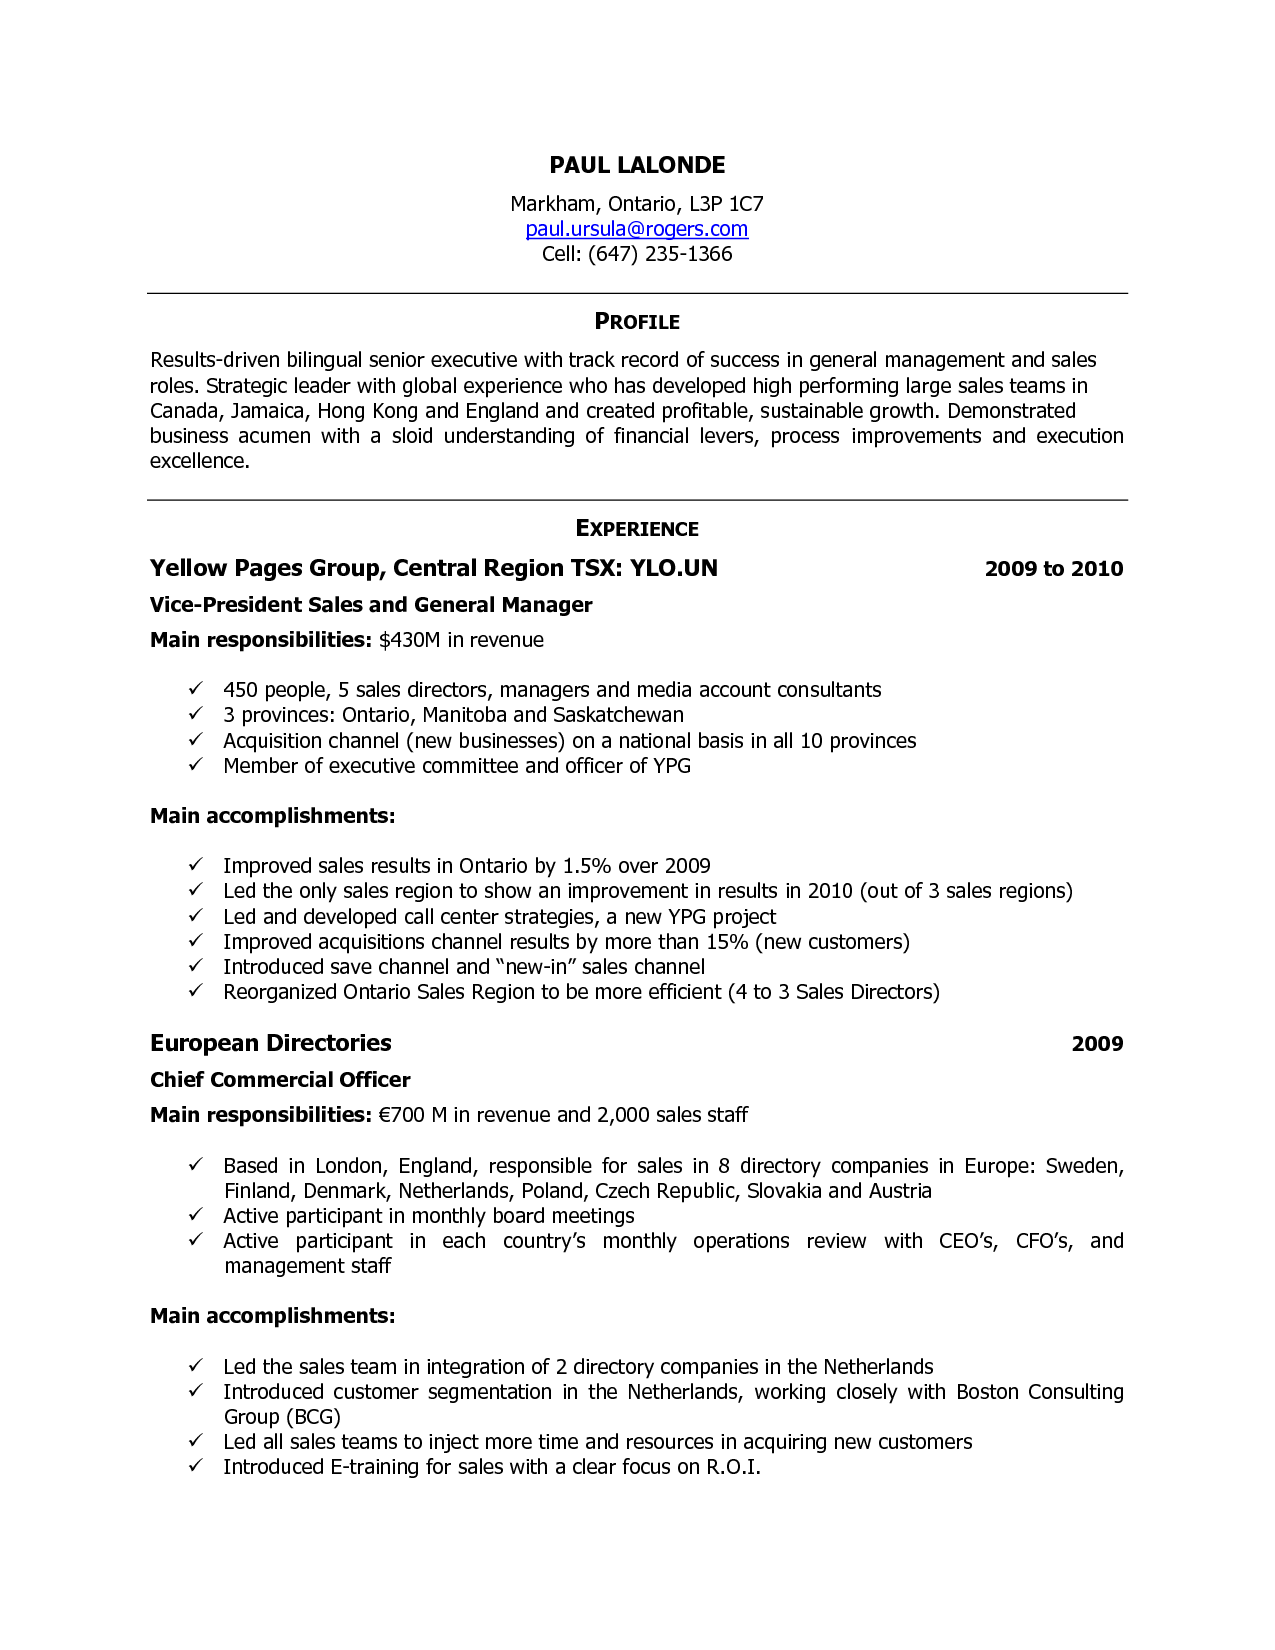 Canadian Student Resume In 2020 Resume Template Free Resume